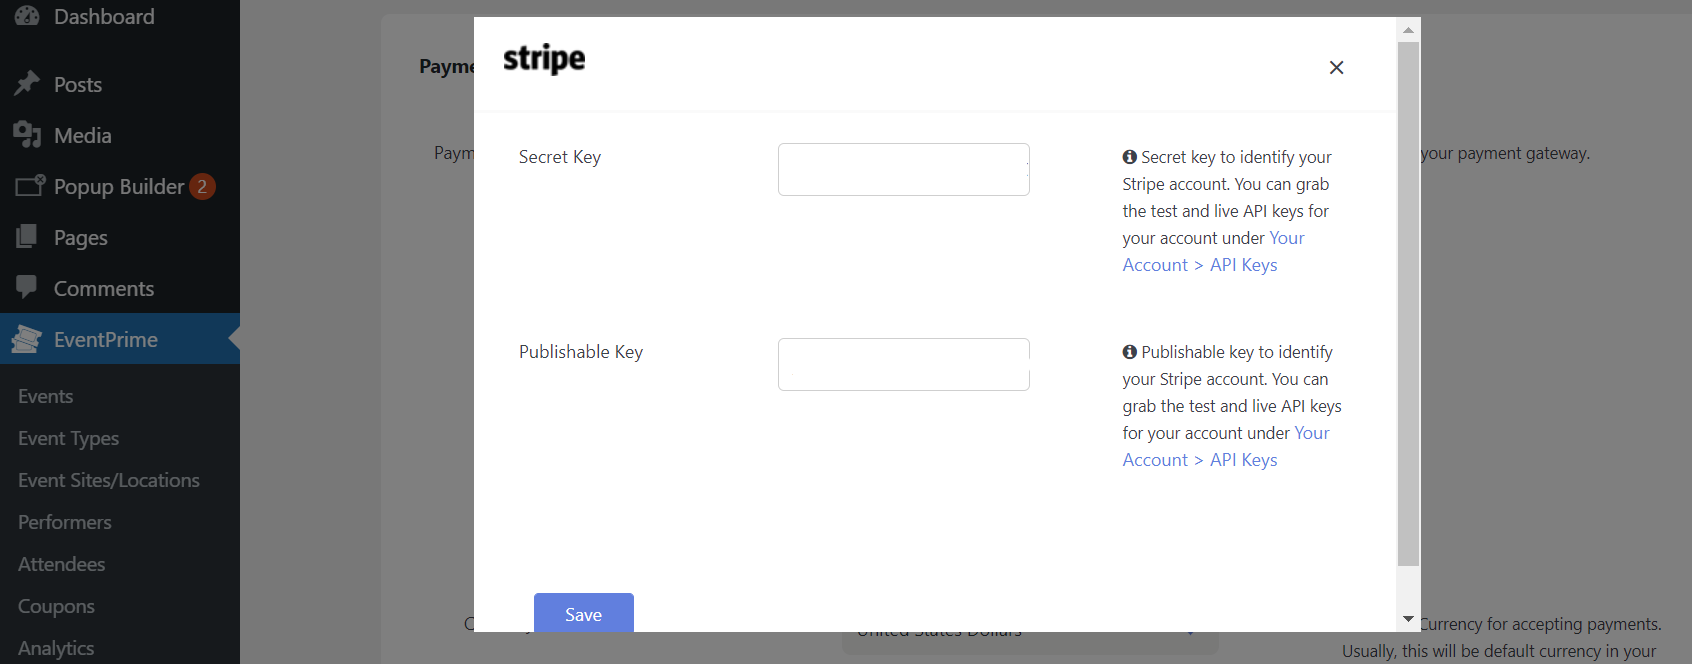 stripe payment system